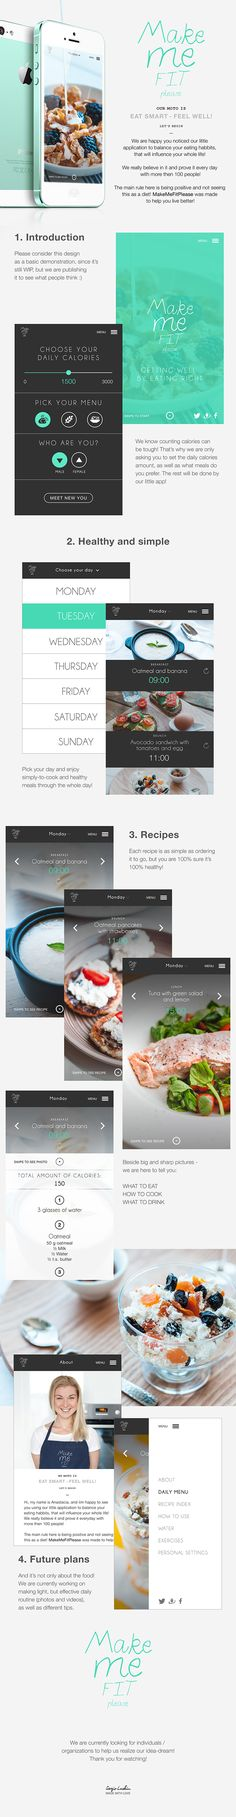 I like the black fade at the top of the image (recipe) screen. This design really requires good photography.